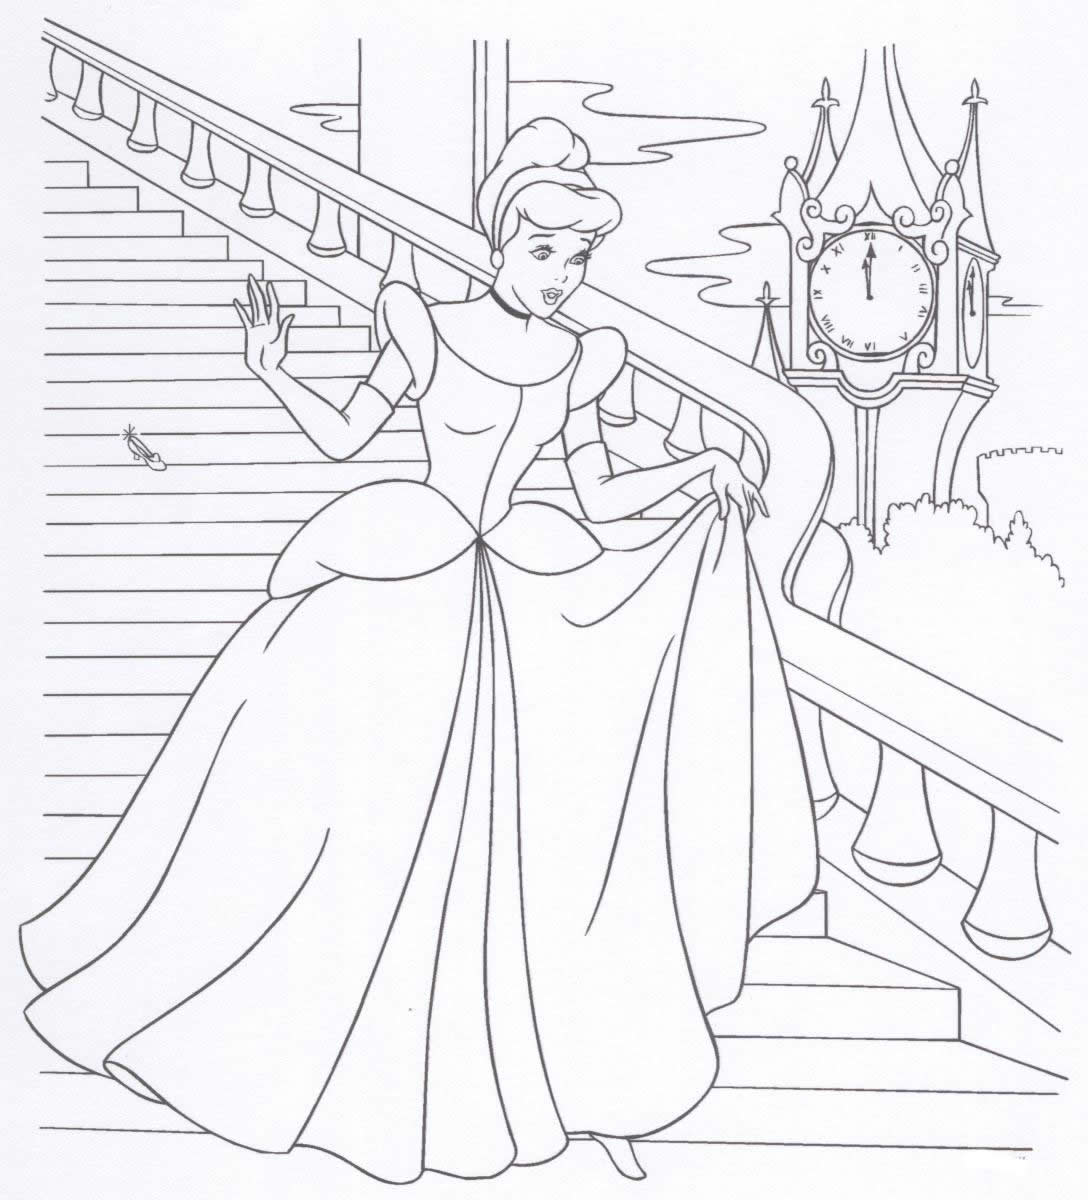 Free Printable Disney Princess Coloring Pages For Kids Princess Coloring Book Pages